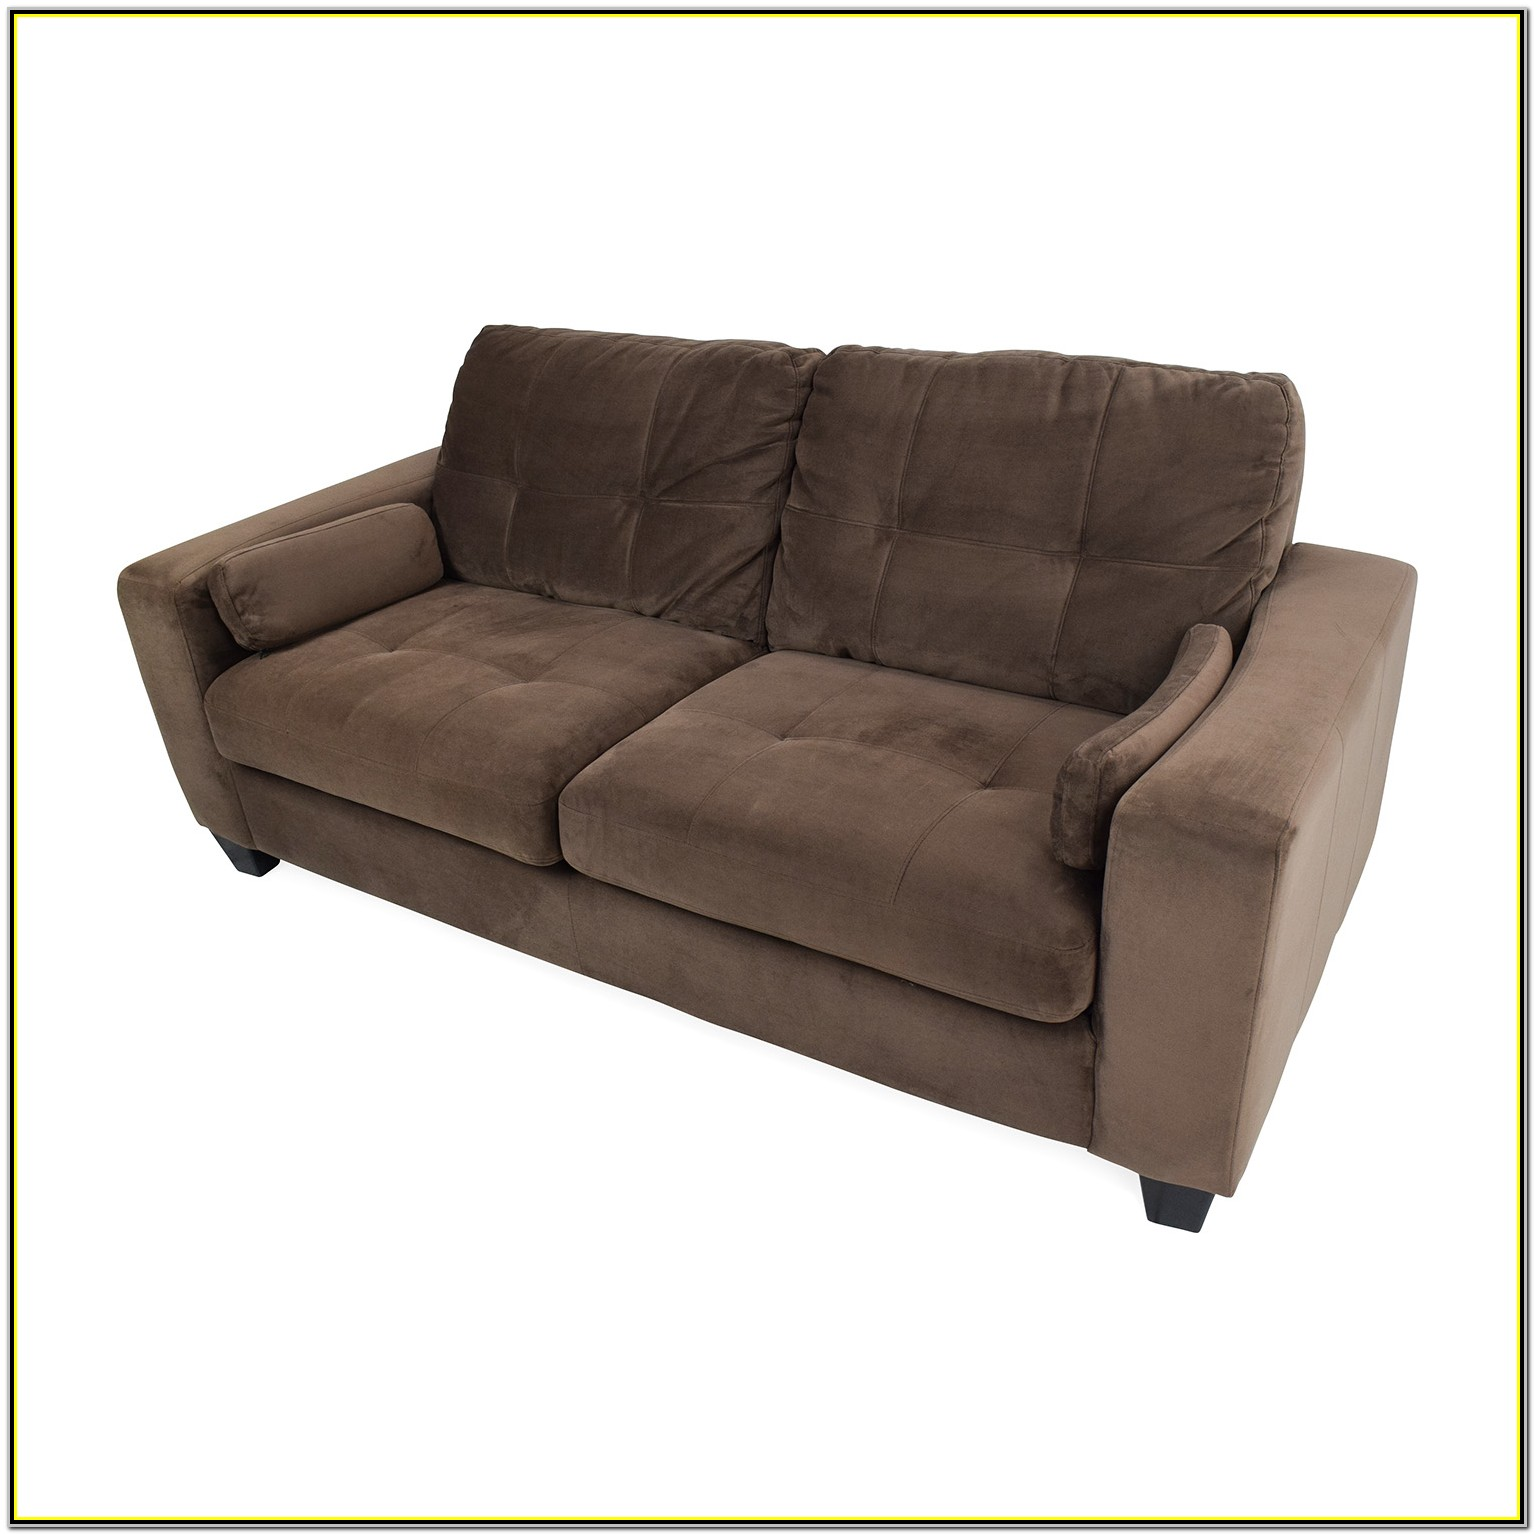 Jennifer Convertibles Sleeper Sofa Sectional